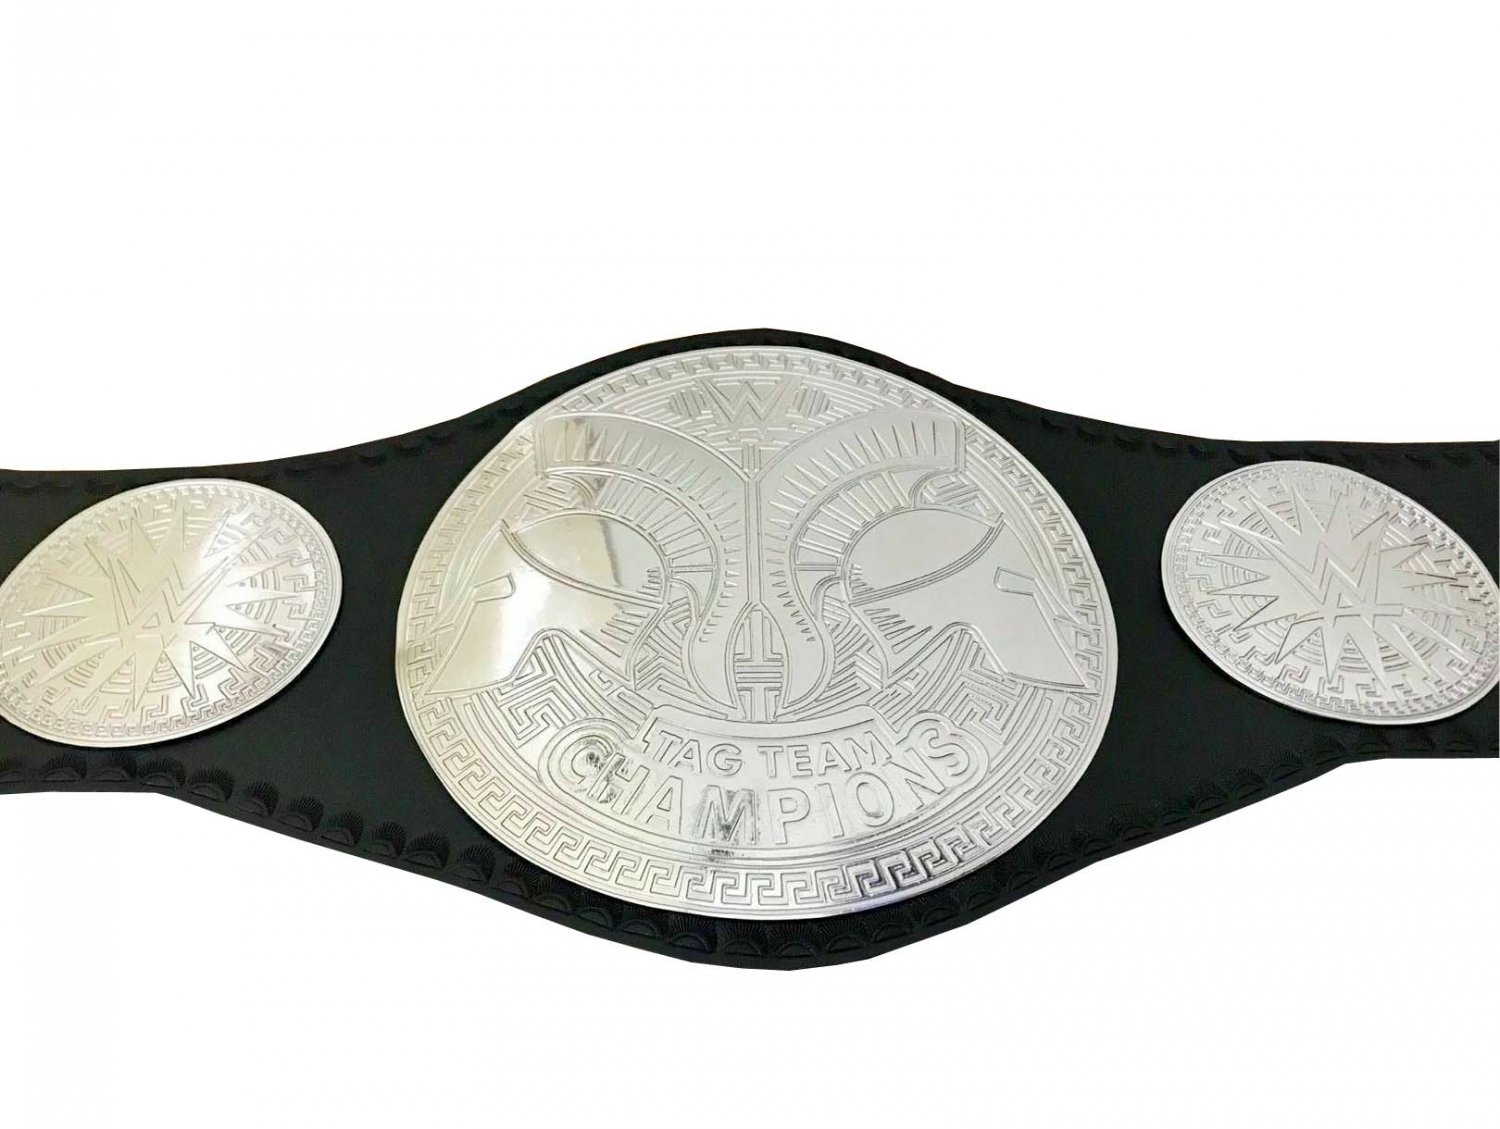 TAG TEAM WRESTLING CHAMPIONSHIP BELT BLACK LEATHER STRAP ADULT SIZE